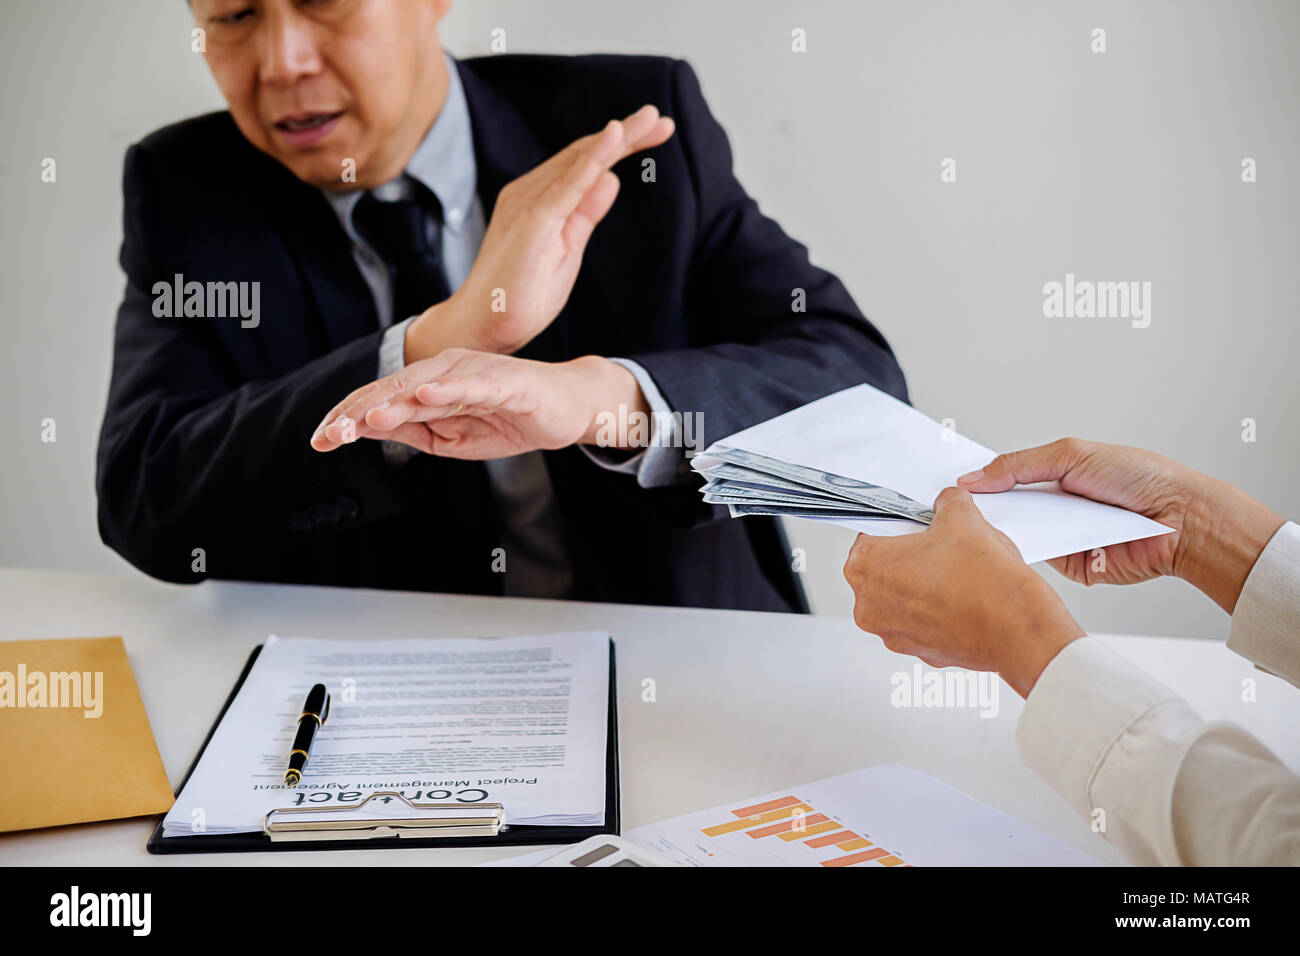 Businessman refusing money in the envelope to agreement contract, Bribe and corruption concept - Stock Image